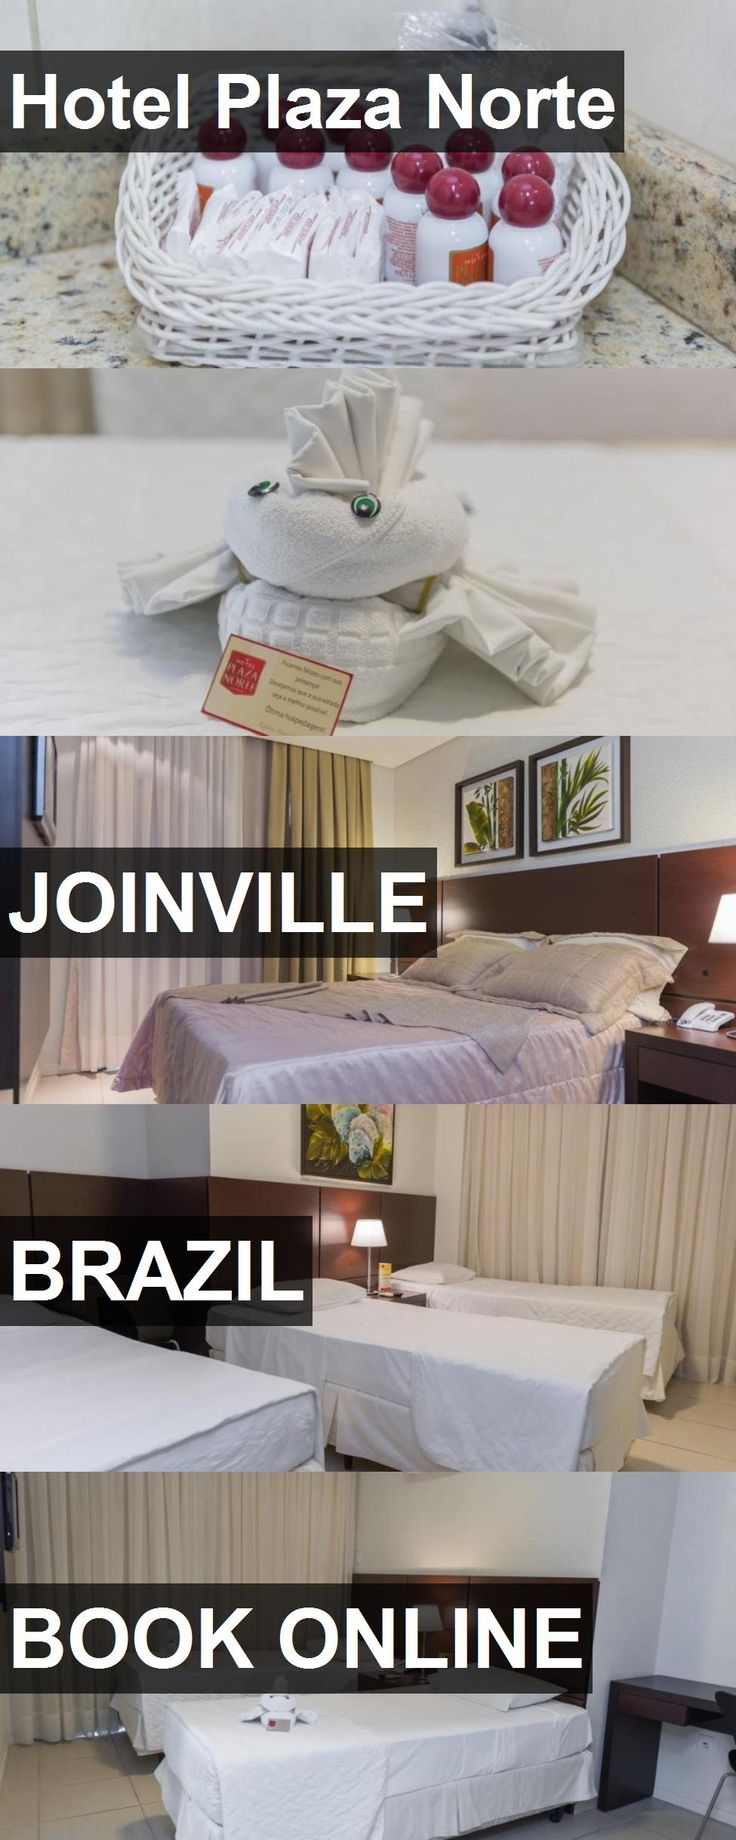 Hotel Plaza Norte in Joinville, Brazil. For more information, photos, reviews and best prices please follow the link. #Brazil #Joinville #travel #vacation #hotel